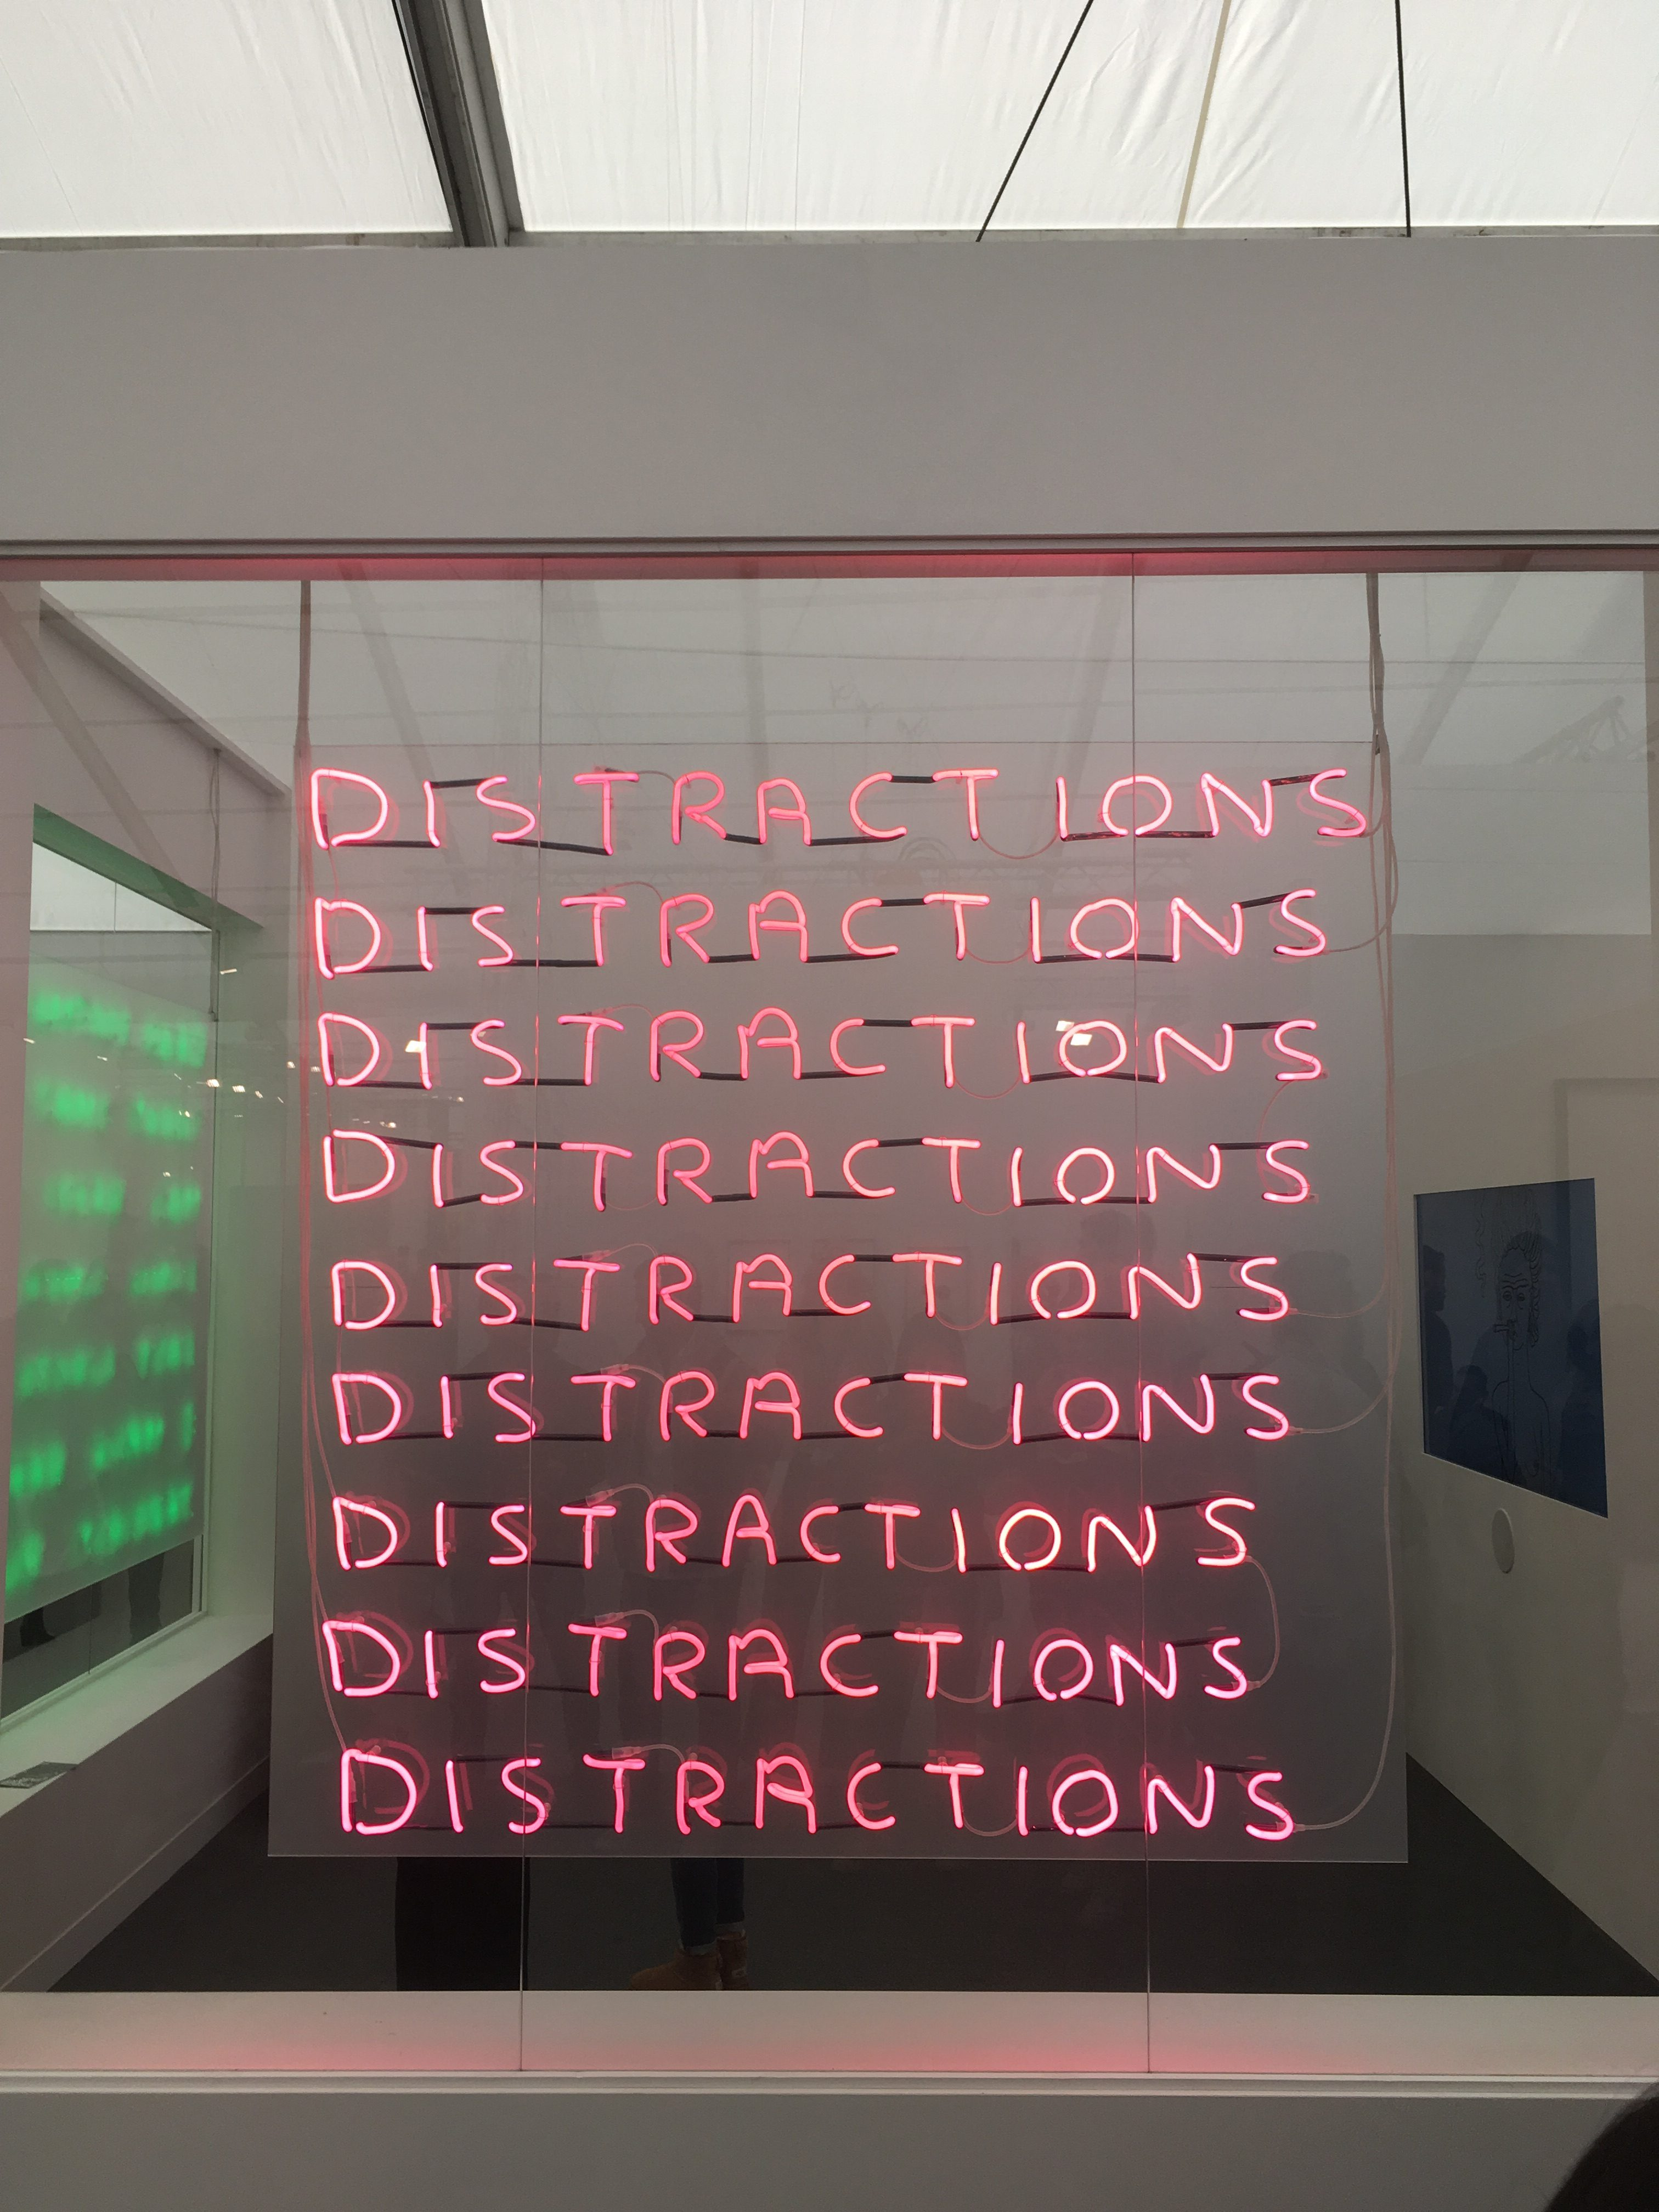 David Shrigley, Distractions